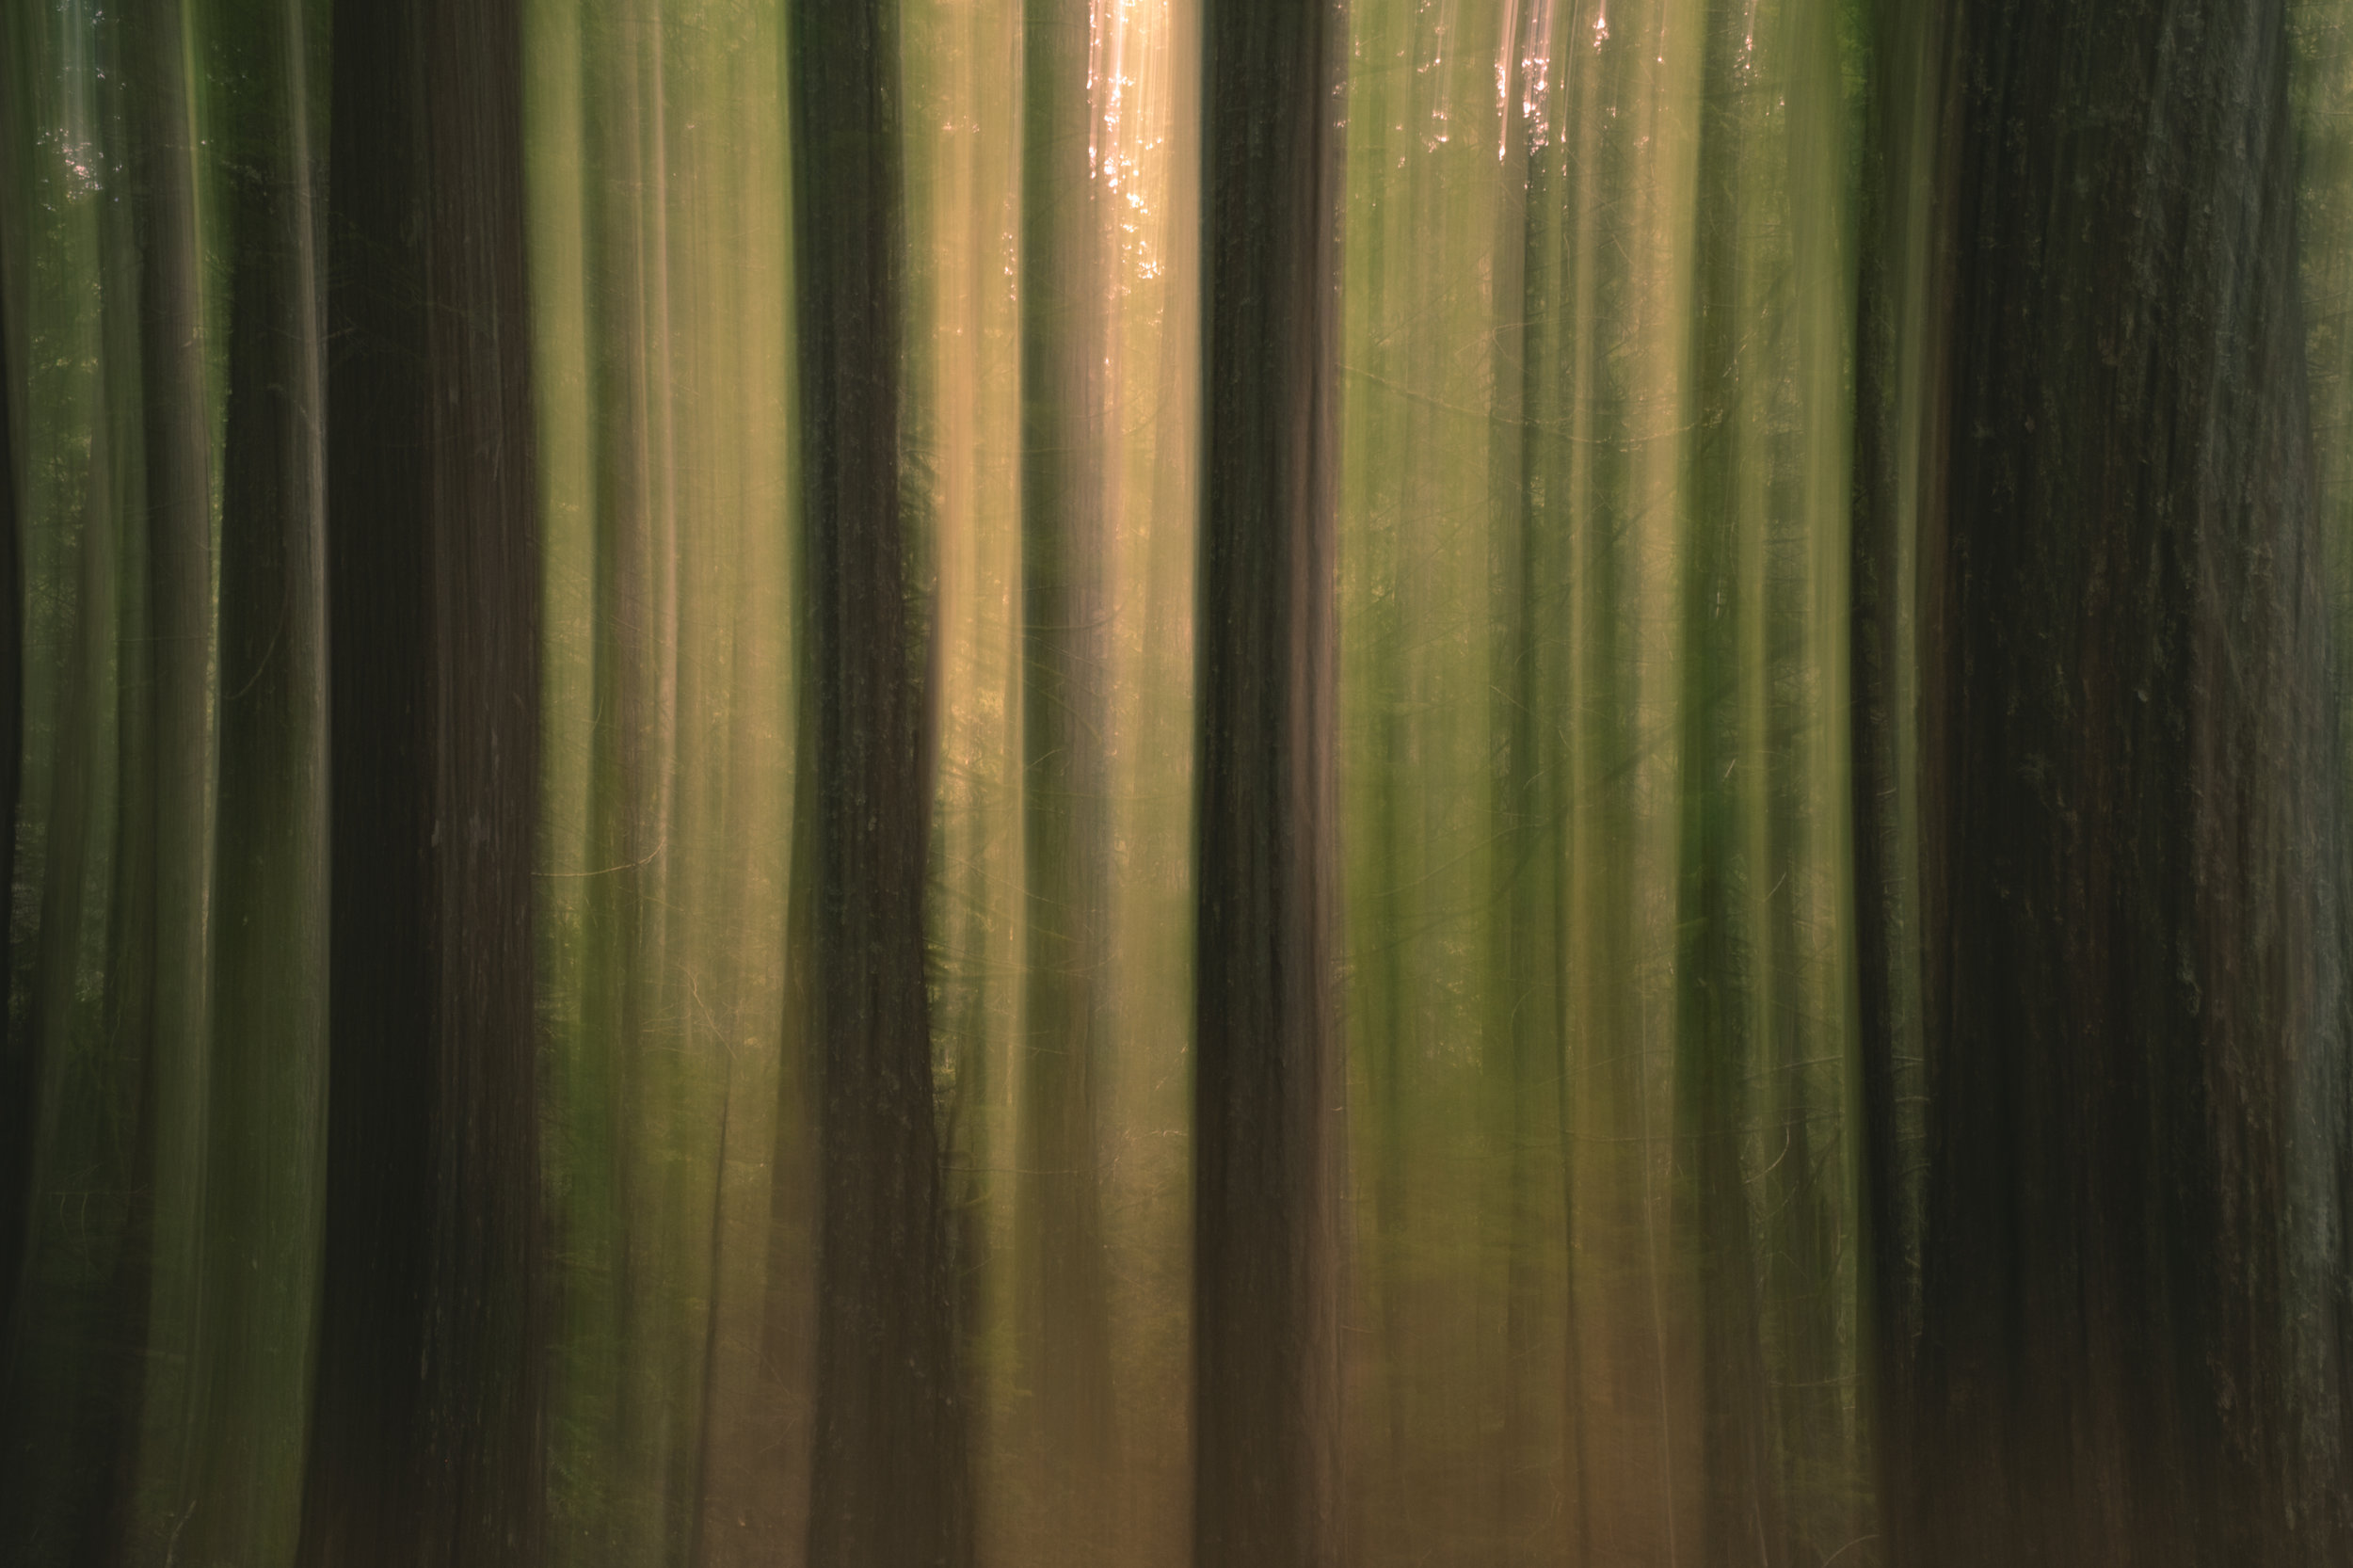 Plenty of others before myself have done intentional camera movement with trees.